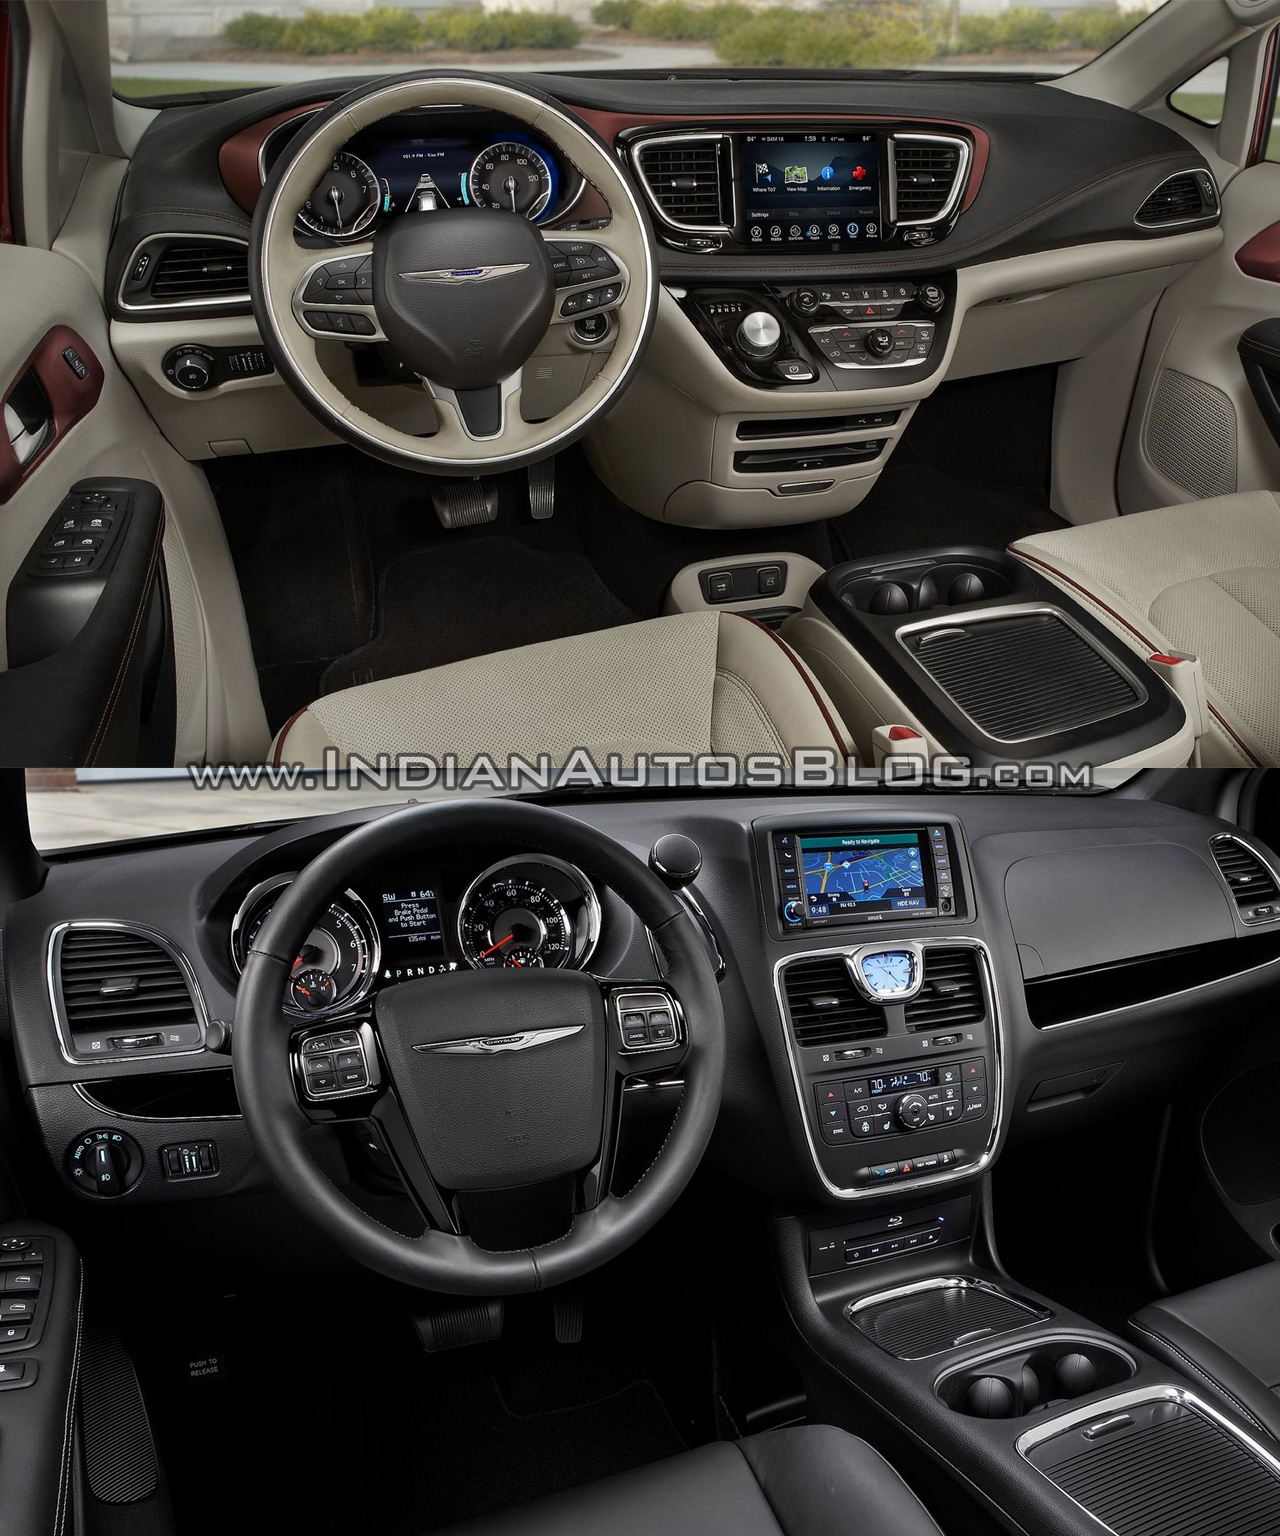 hight resolution of 2017 chrysler pacifica vs 2016 chrysler town u0026 country interior dashboard